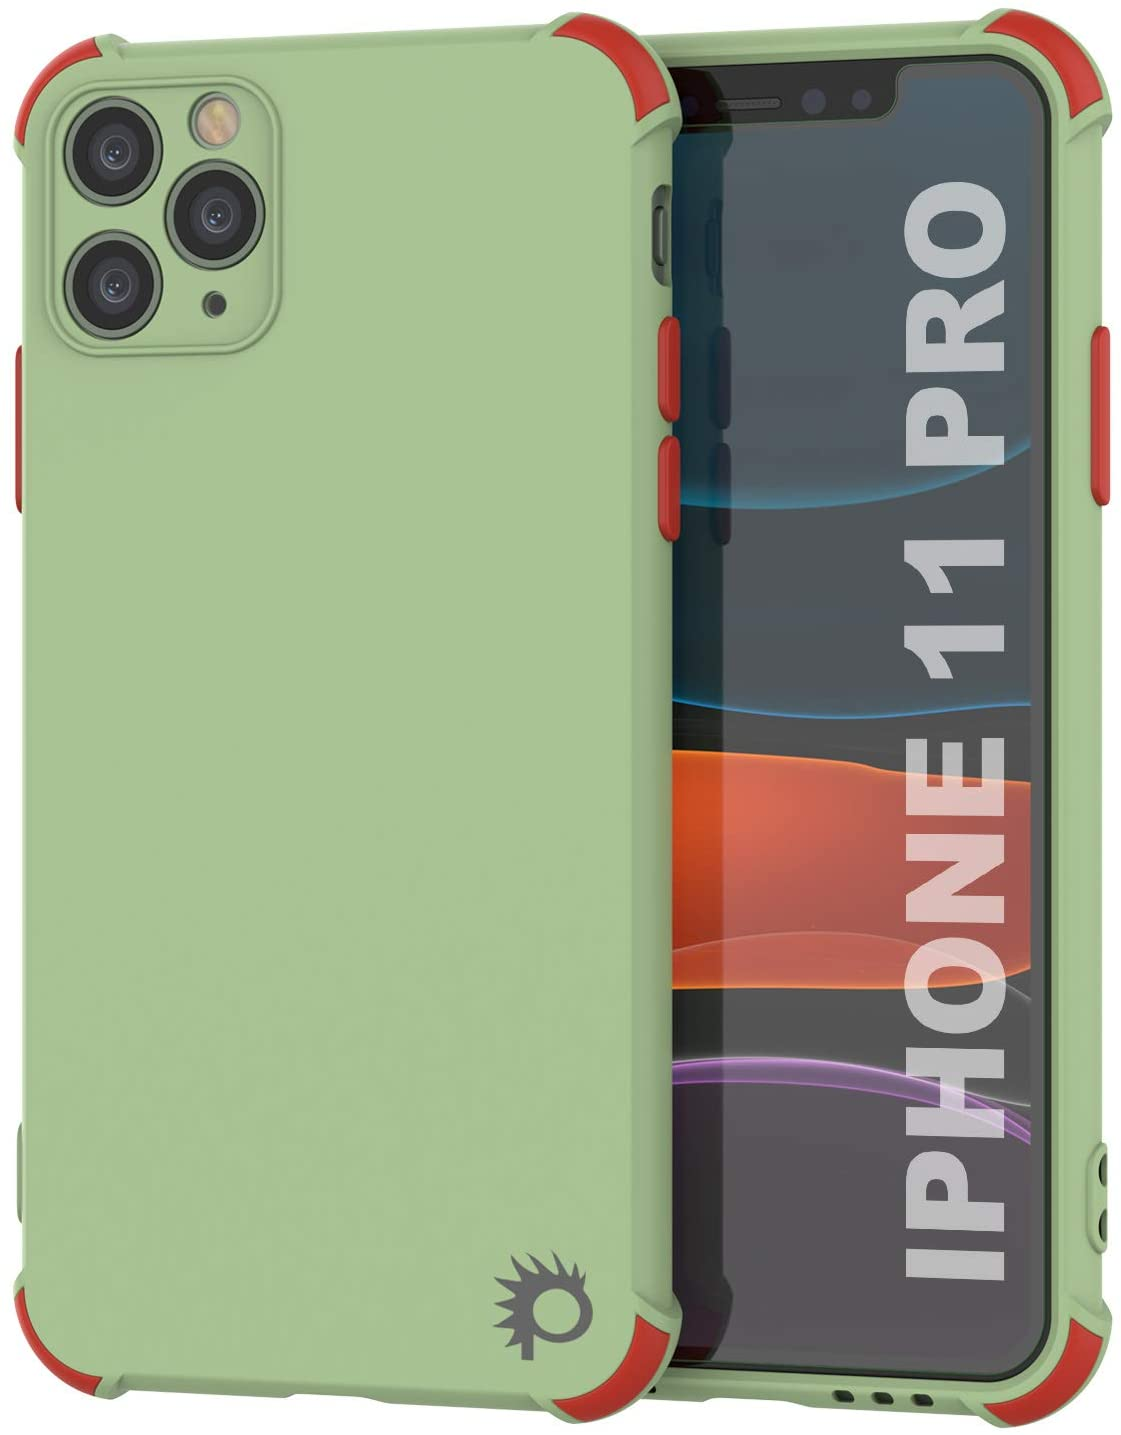 Punkcase Protective & Lightweight TPU Case [Sunshine Series] for iPhone 11 Pro [Light Green]